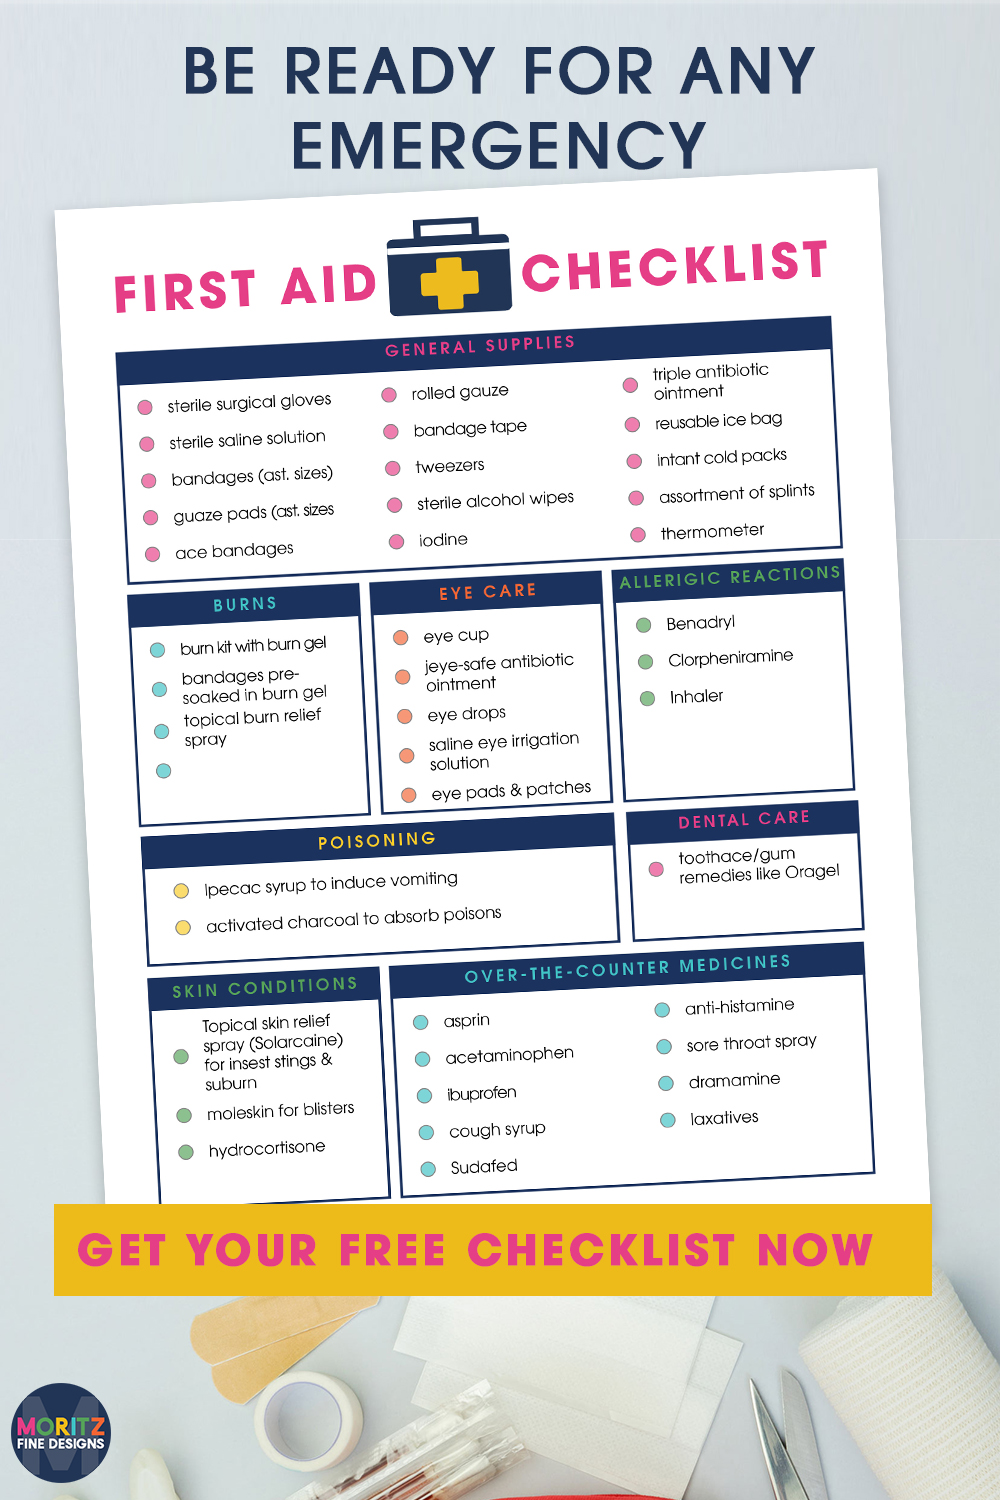 Every household needs a well stocked first aid kit. Use the free printable First Aid Checklist to make sure your kit is fully supplied.